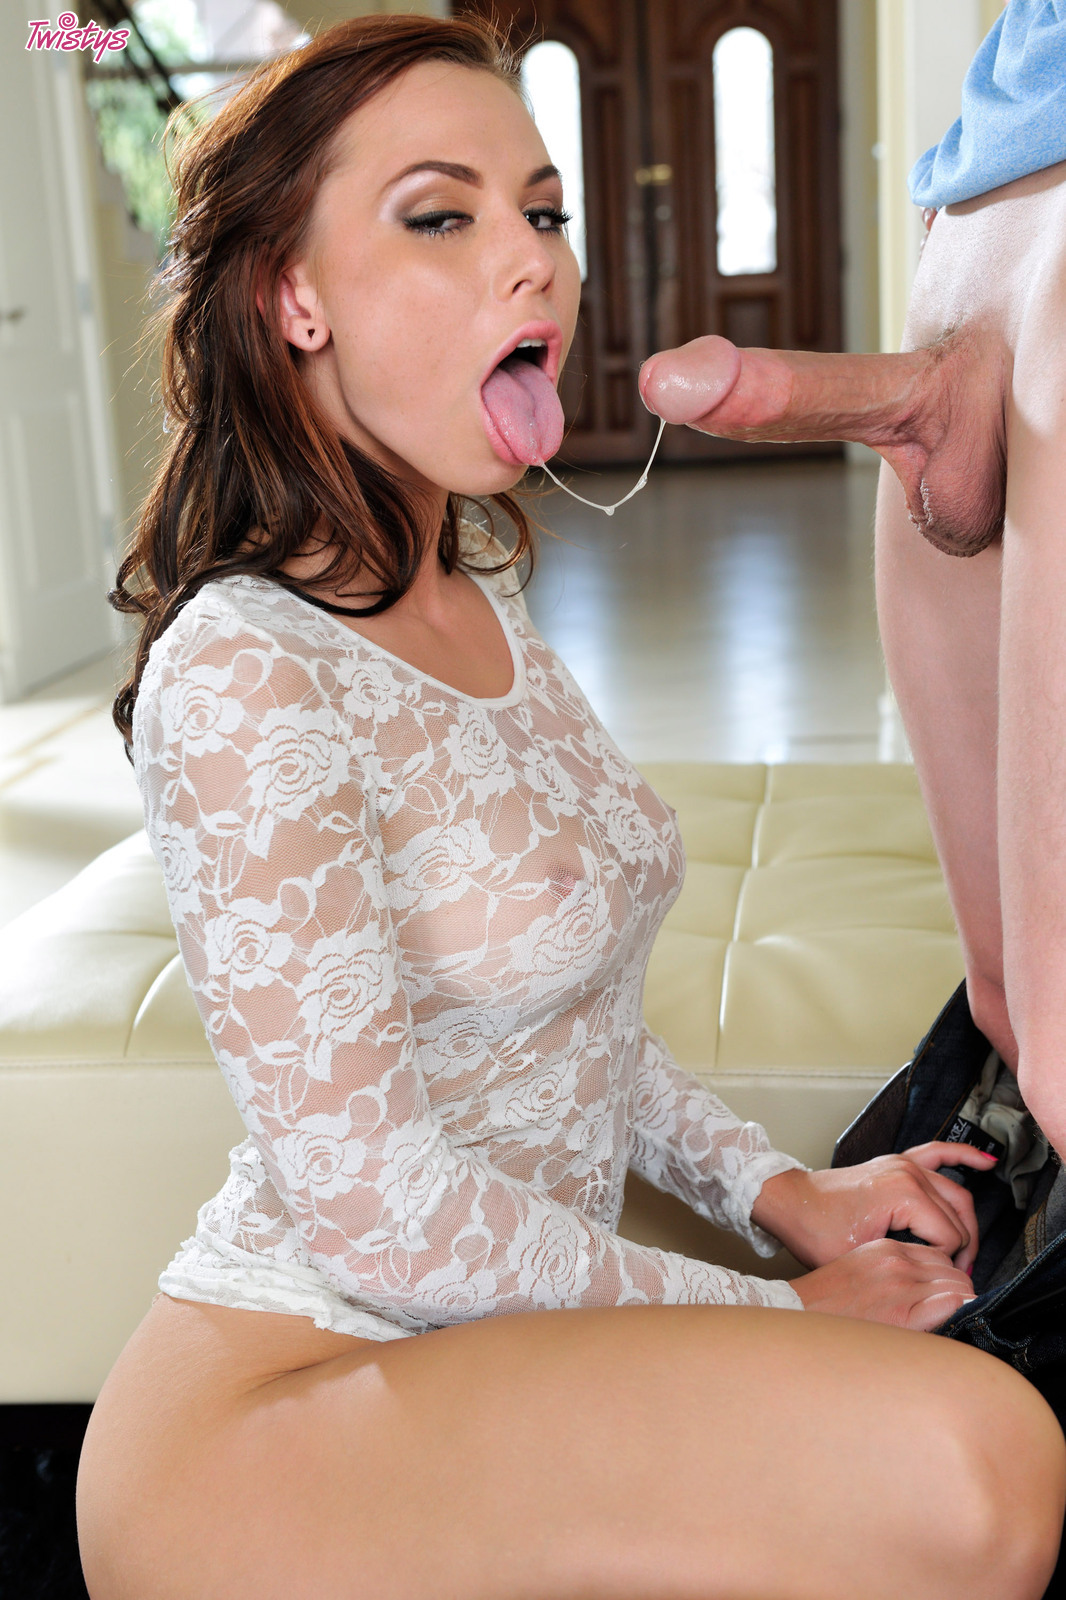 Aidra Fox – Aidra Wants It Bad – Part 1 Of 2 – I'm In Serious Love With This Chick 10